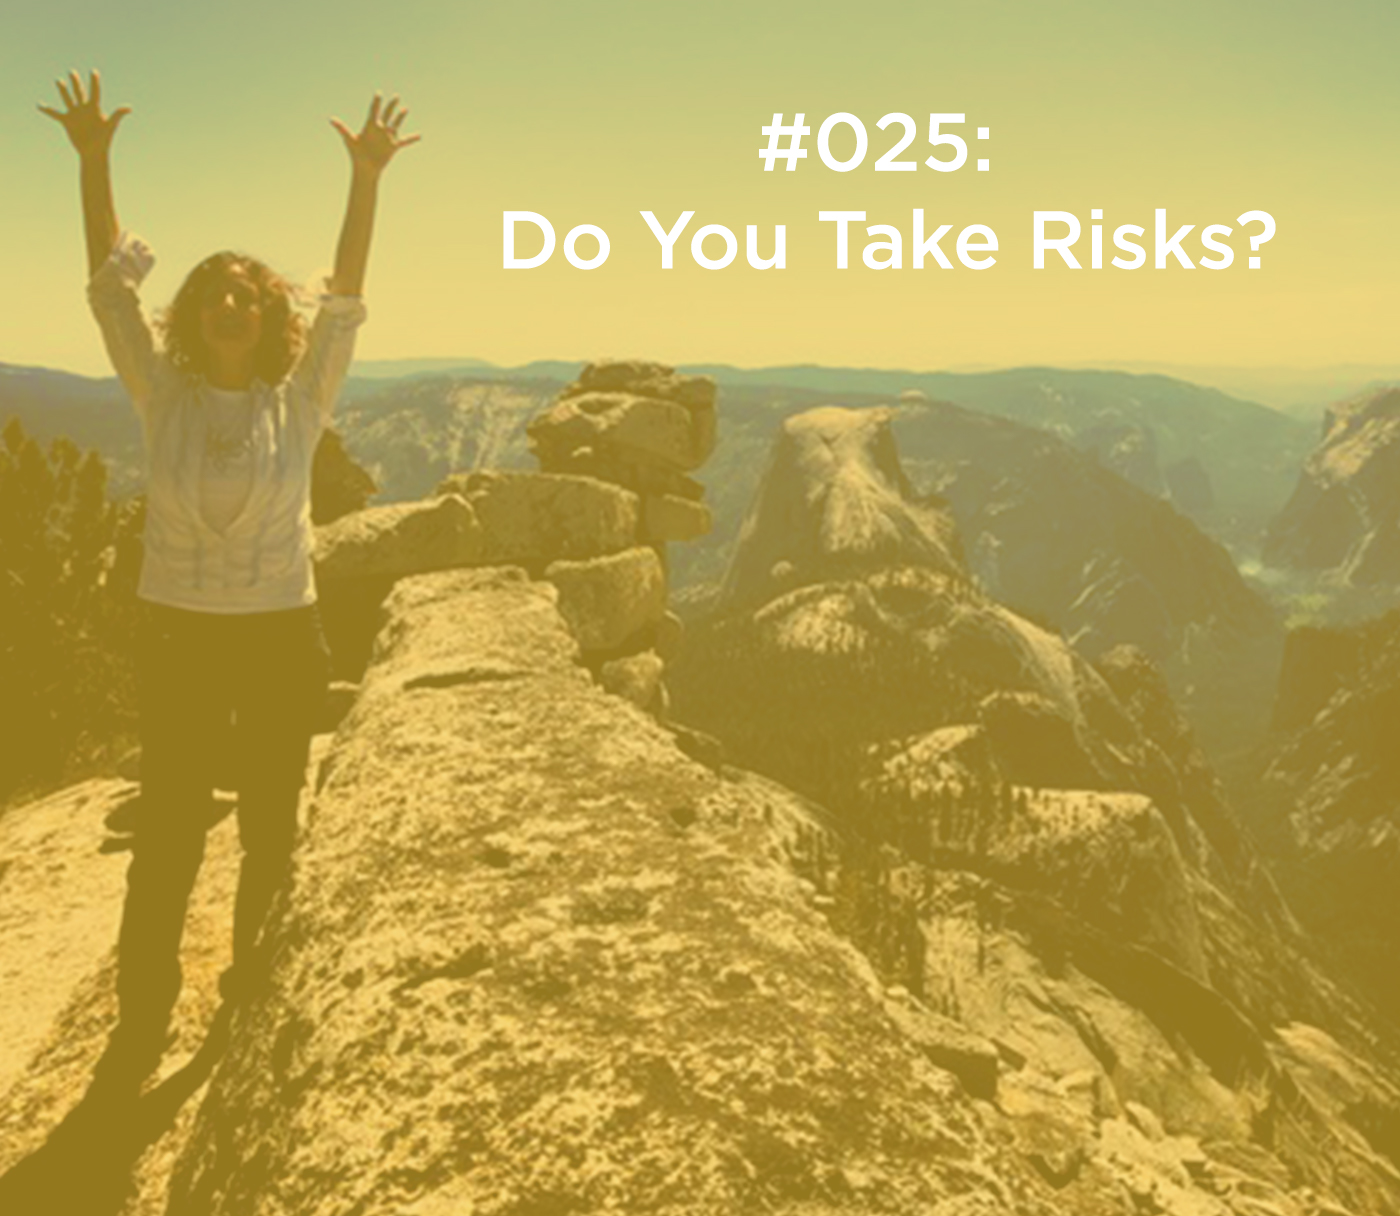 Do You Take Risks?